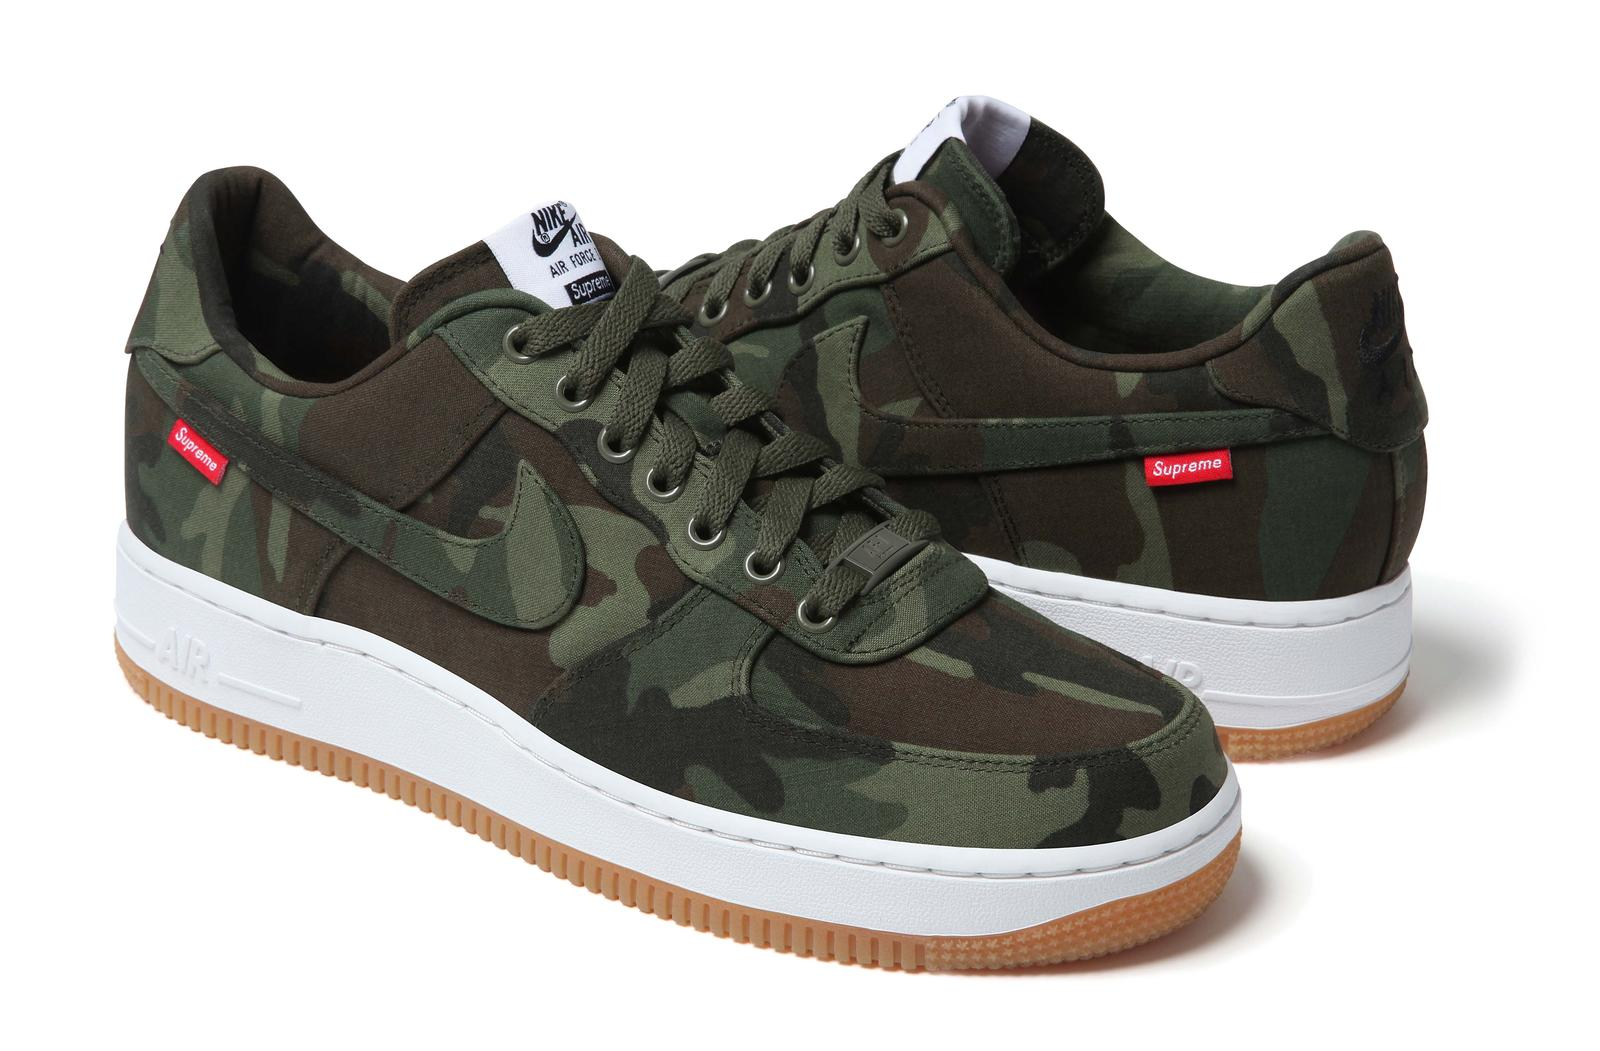 nike supreme team up to launch air force 1 supreme nike. Black Bedroom Furniture Sets. Home Design Ideas